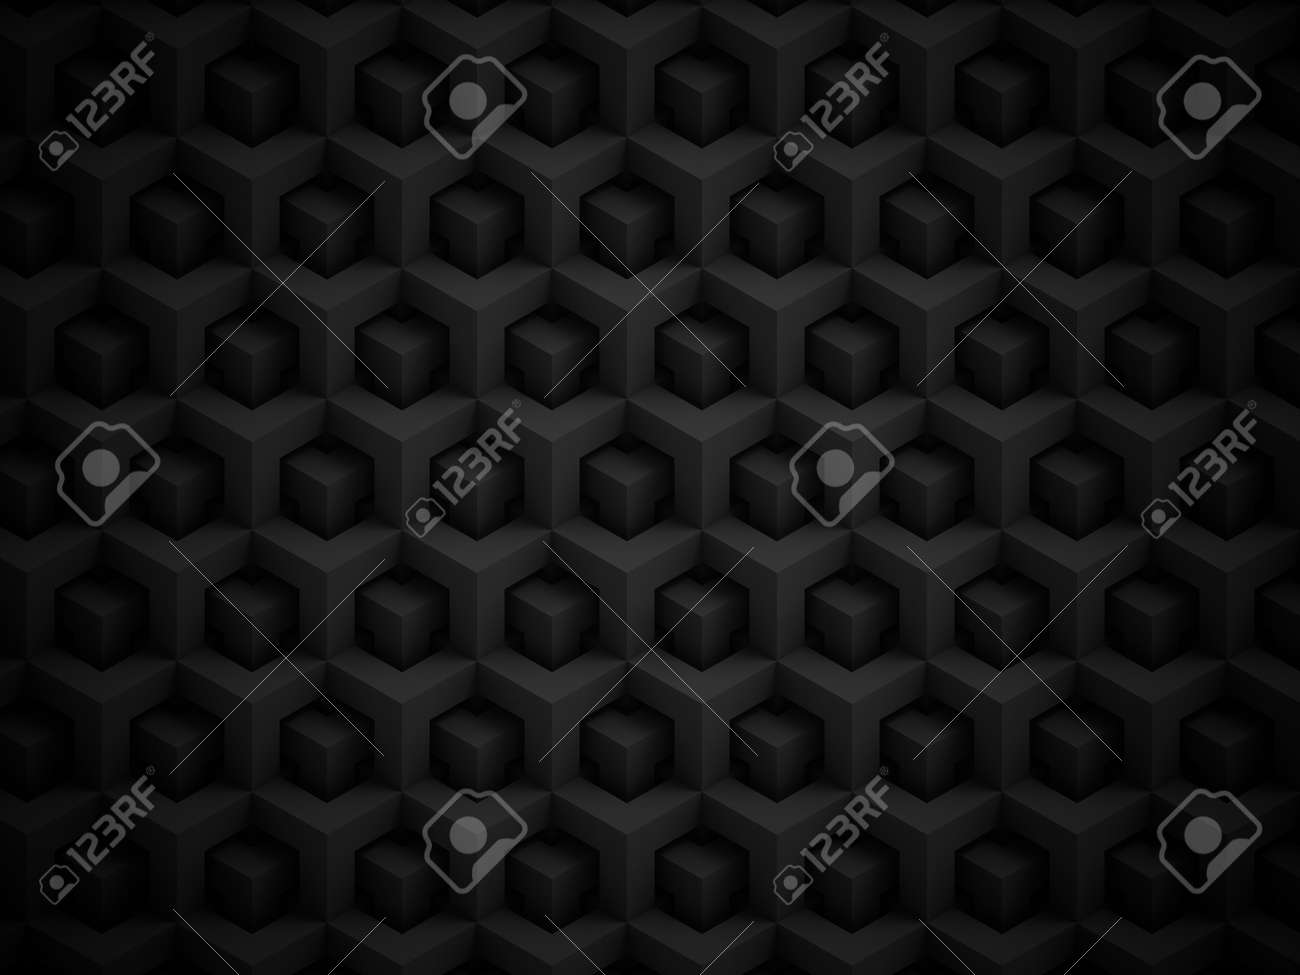 Abstract black polygonal 3D pattern - geometric box structure background - 45148577